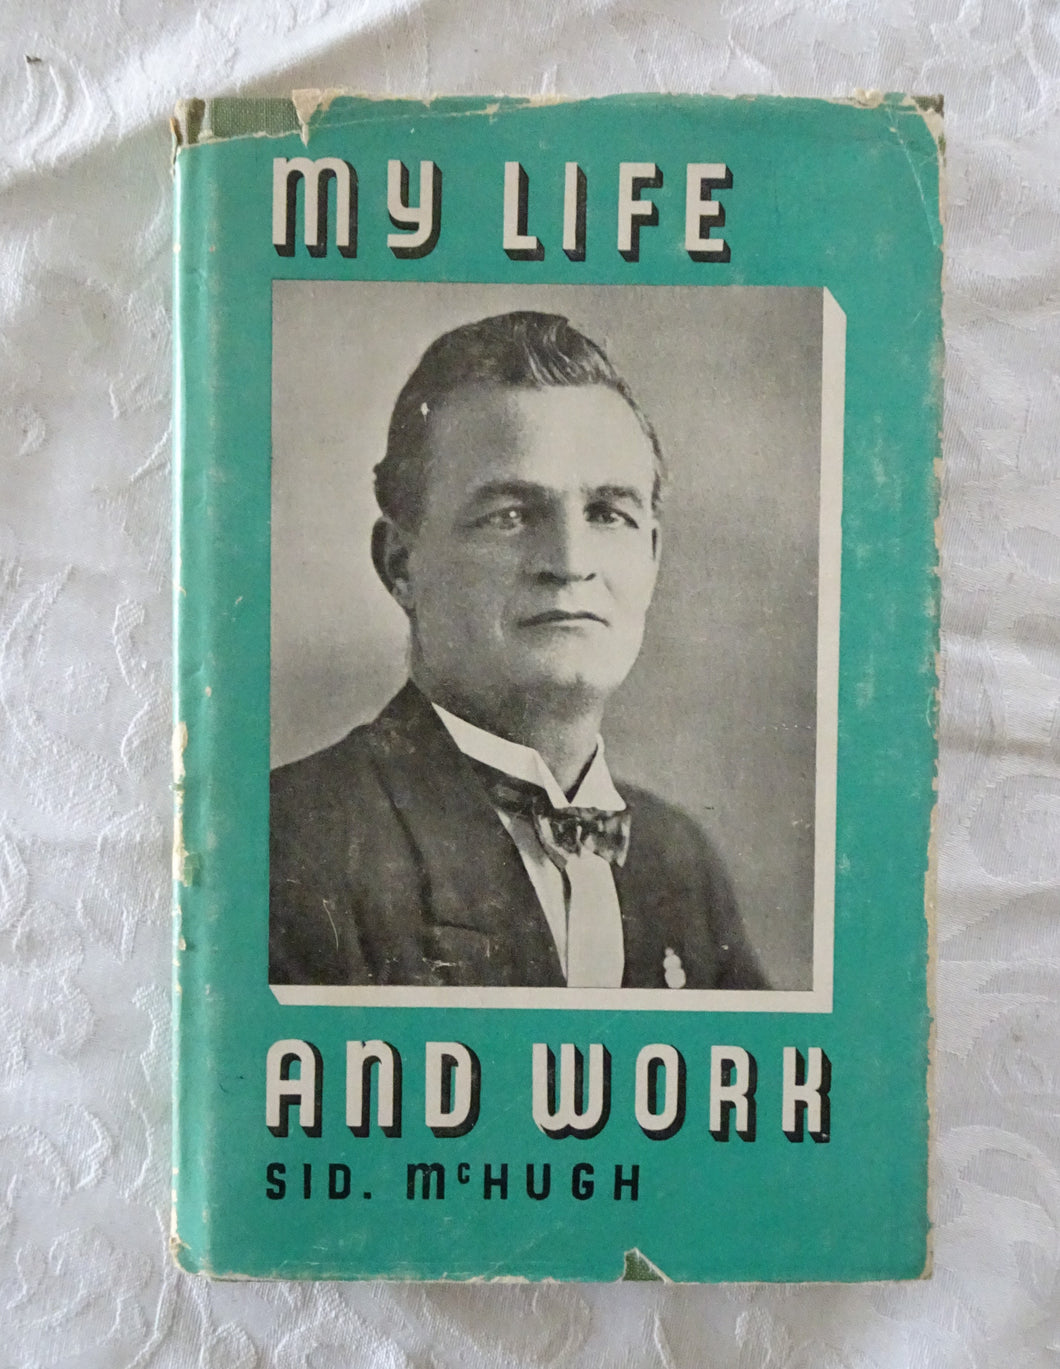 My Life and Work by Sid McHugh